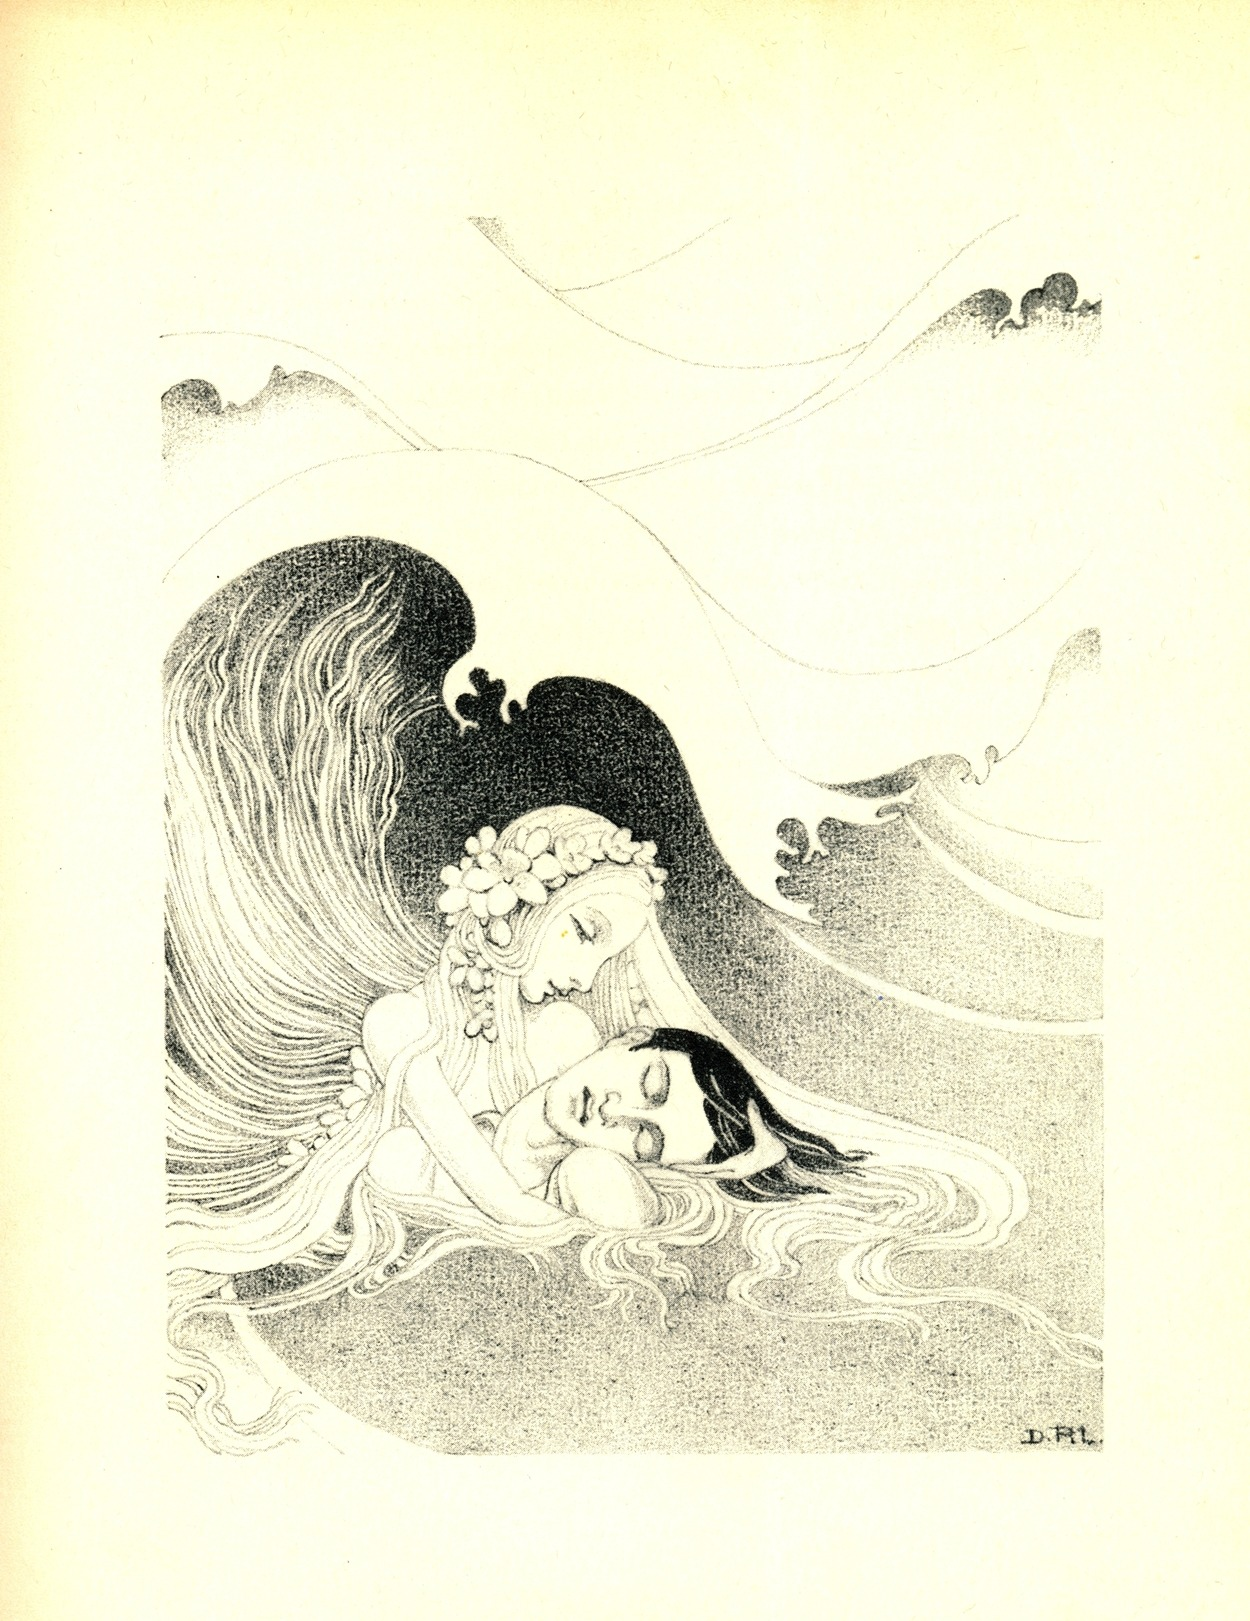 Dorothy Lathrop ~ The Little Mermaid ~ 1939 ~ via His limbs were numbed, his beautiful eyes were closing, and he must have died if the little mermaid had not come to his rescue. She held his head above the water and let the waves drive them whithersoever they would.